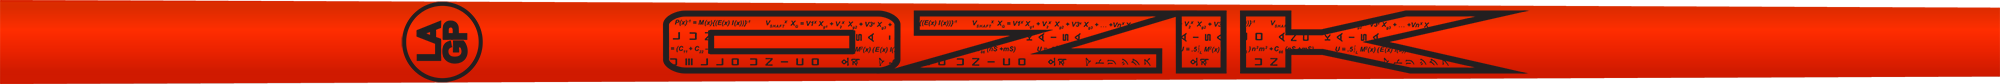 Ozik White Tie: Ferrari Red Black Satin - Wood 40 A